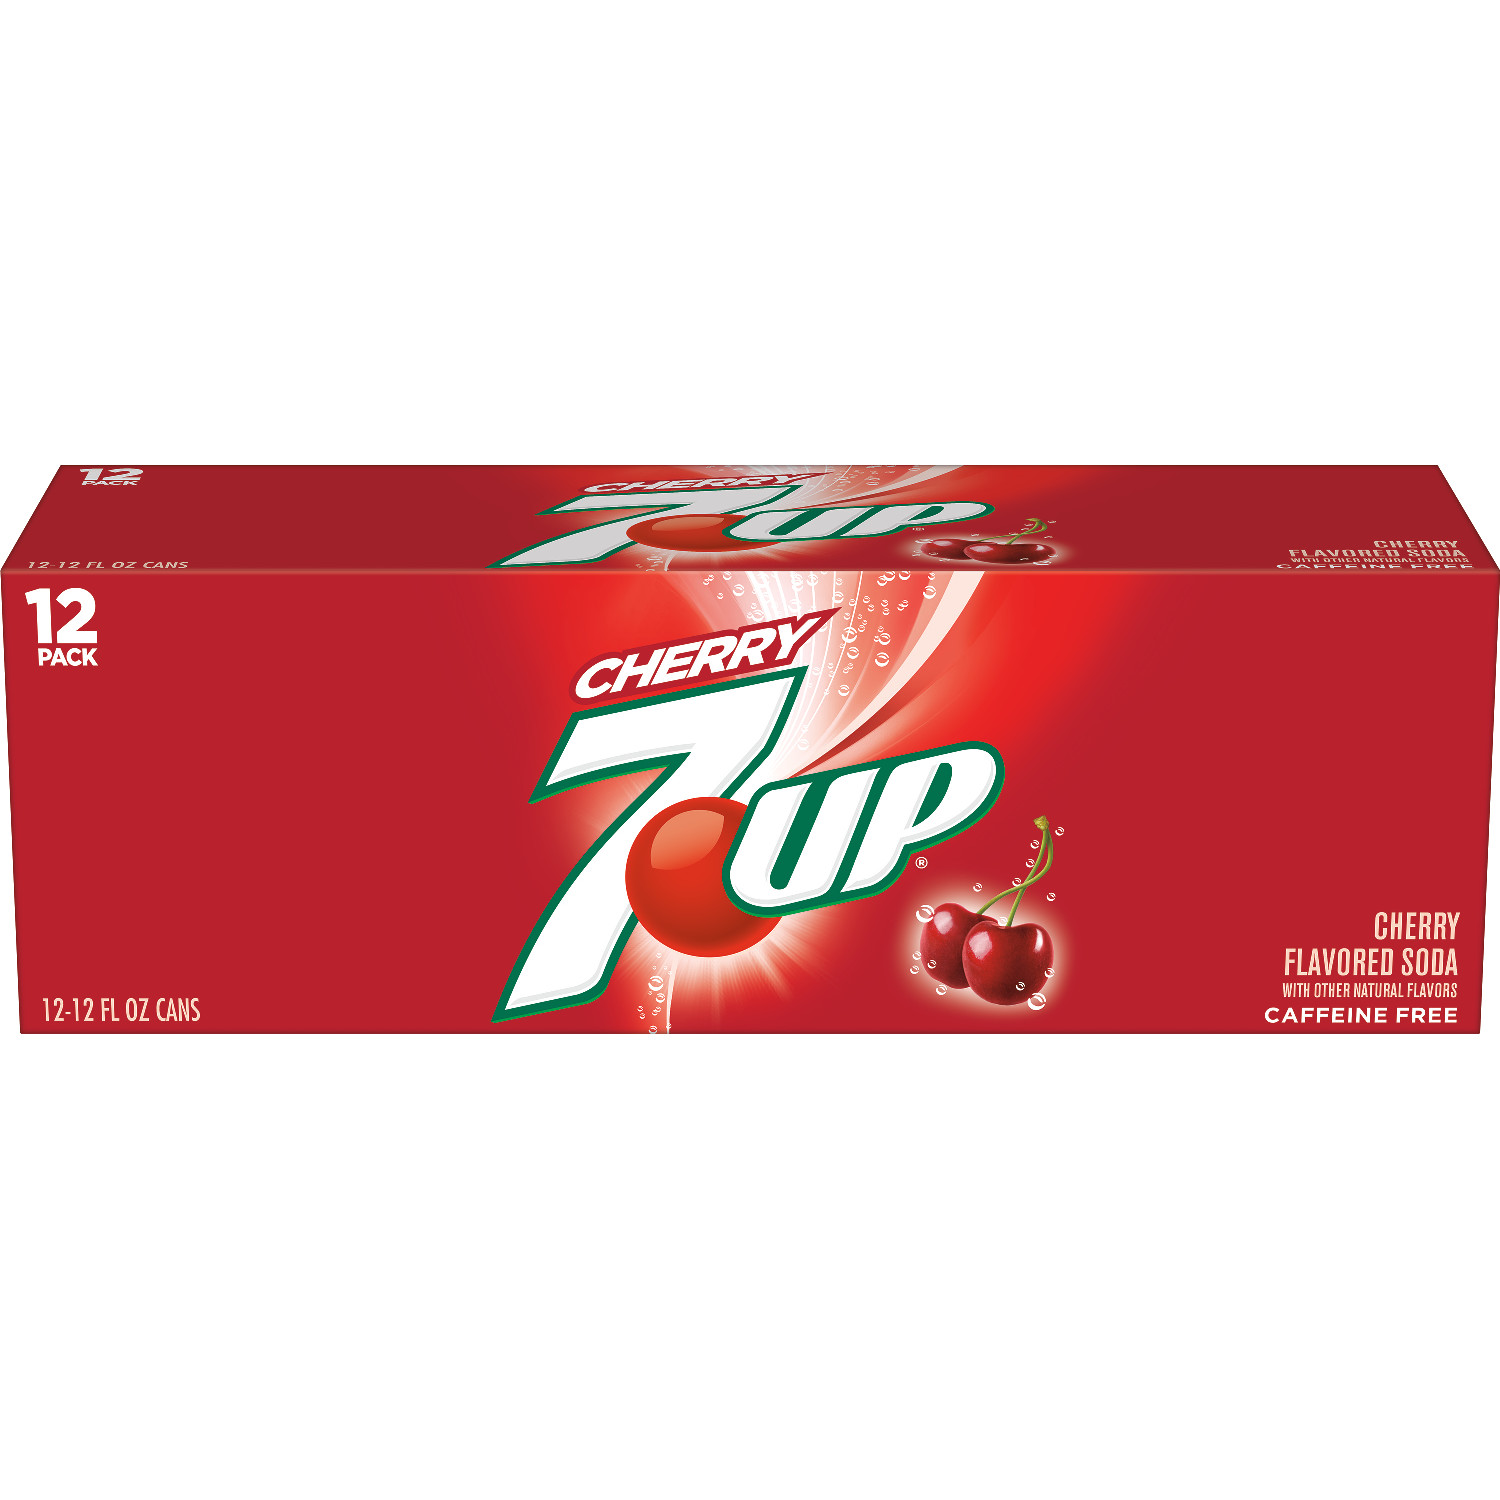 Image of 7UP Cherry, 12 fl oz, 12 pack